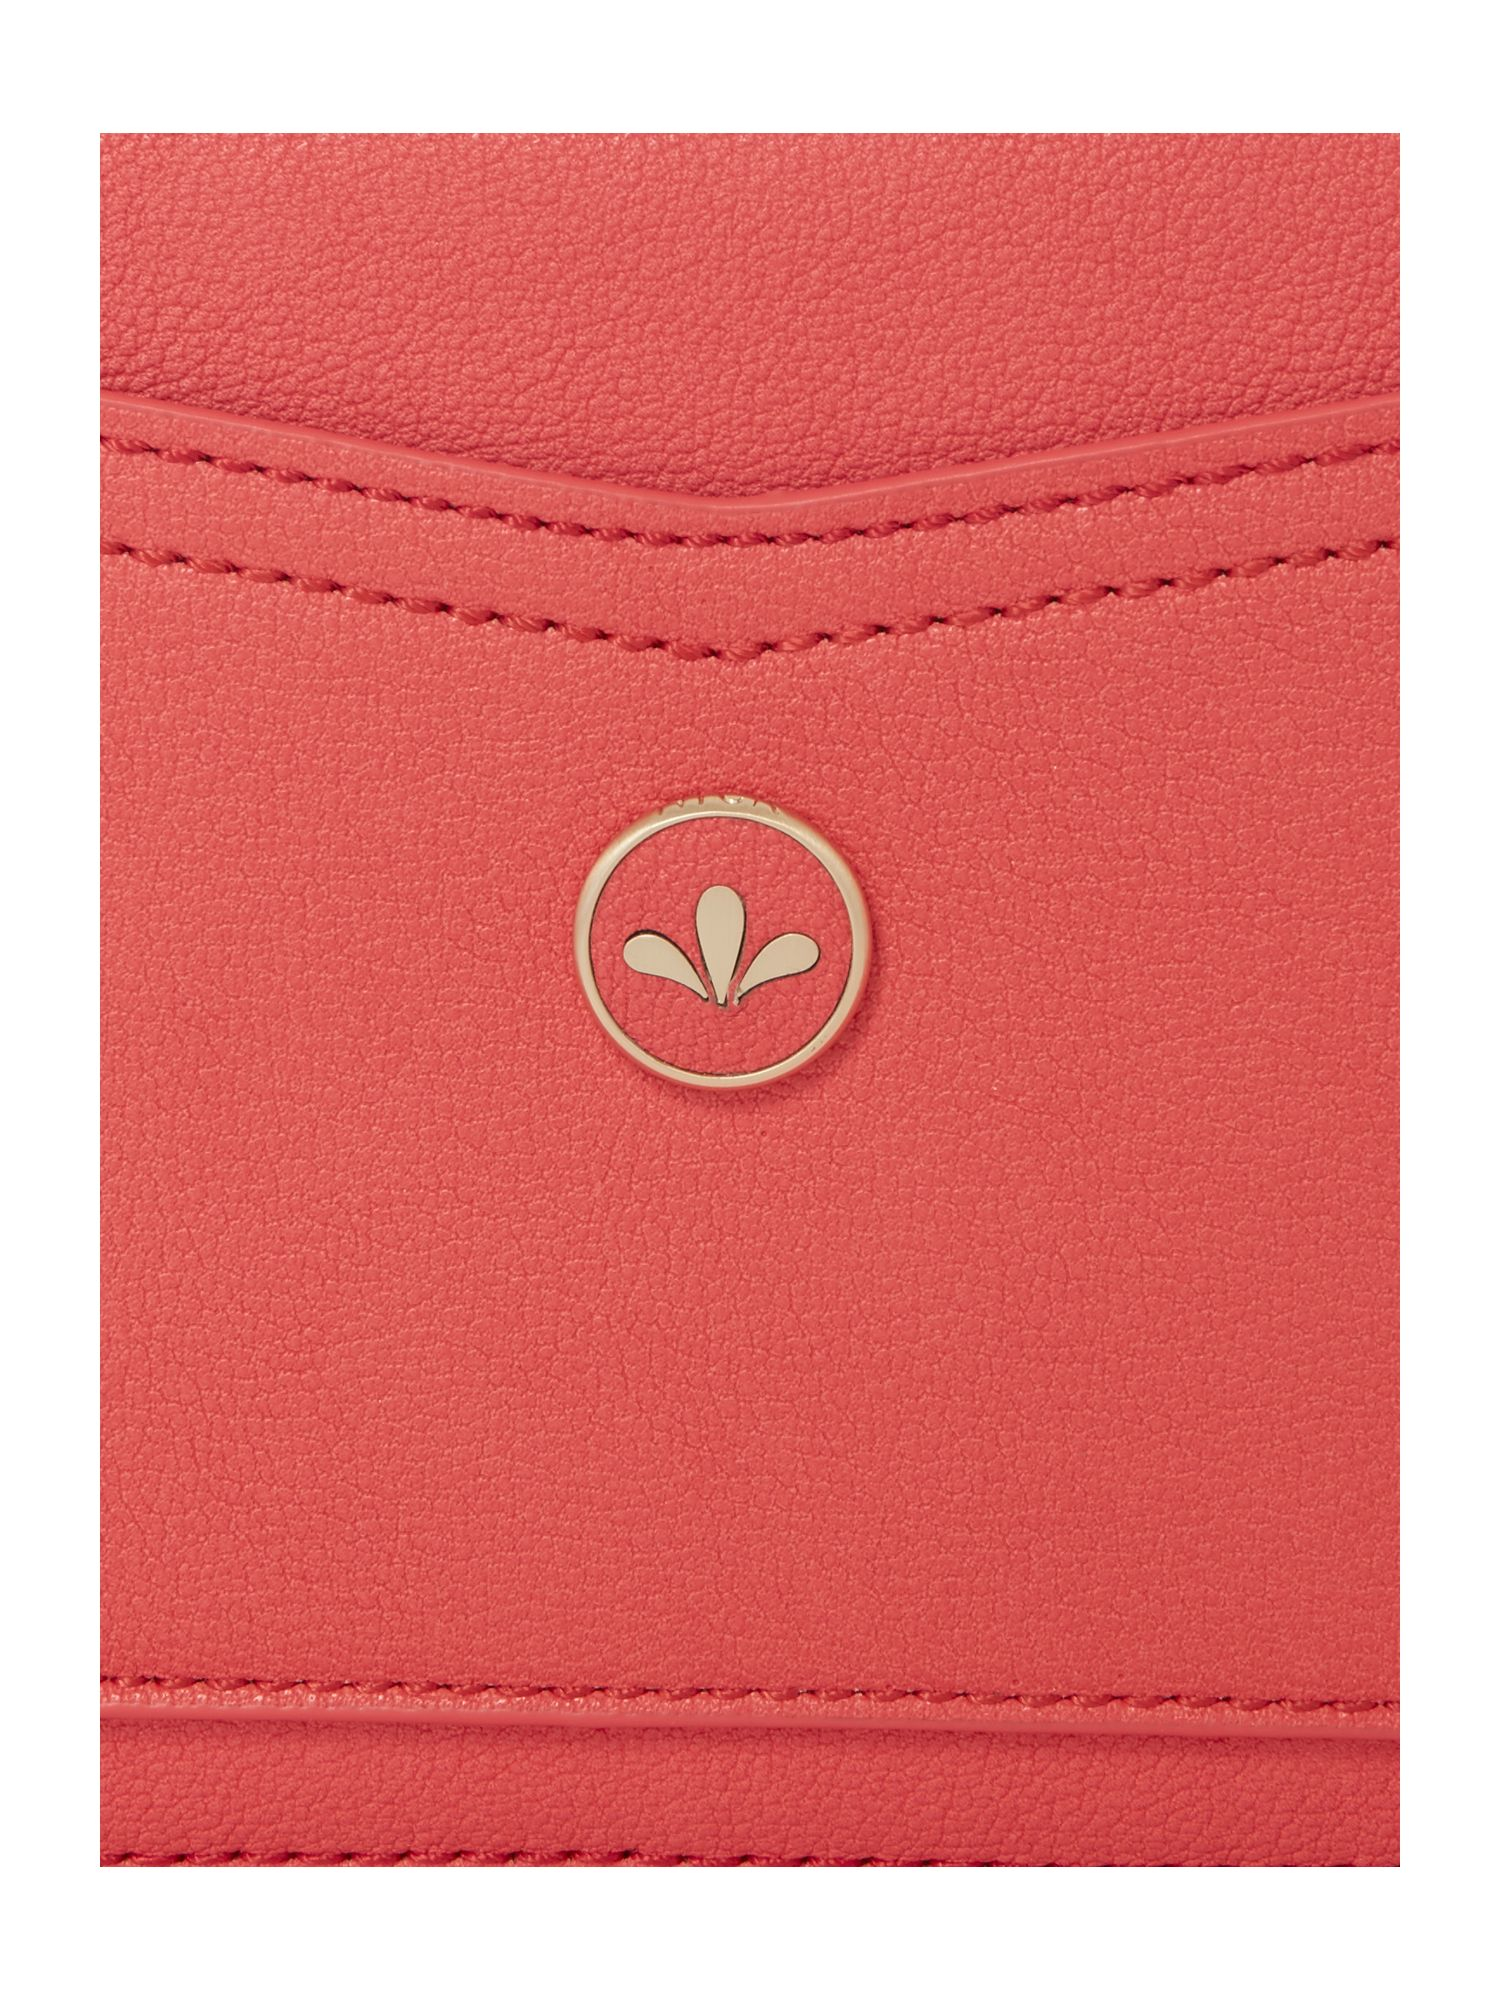 Nica Coco Coral Small Cross Body Bag in Red